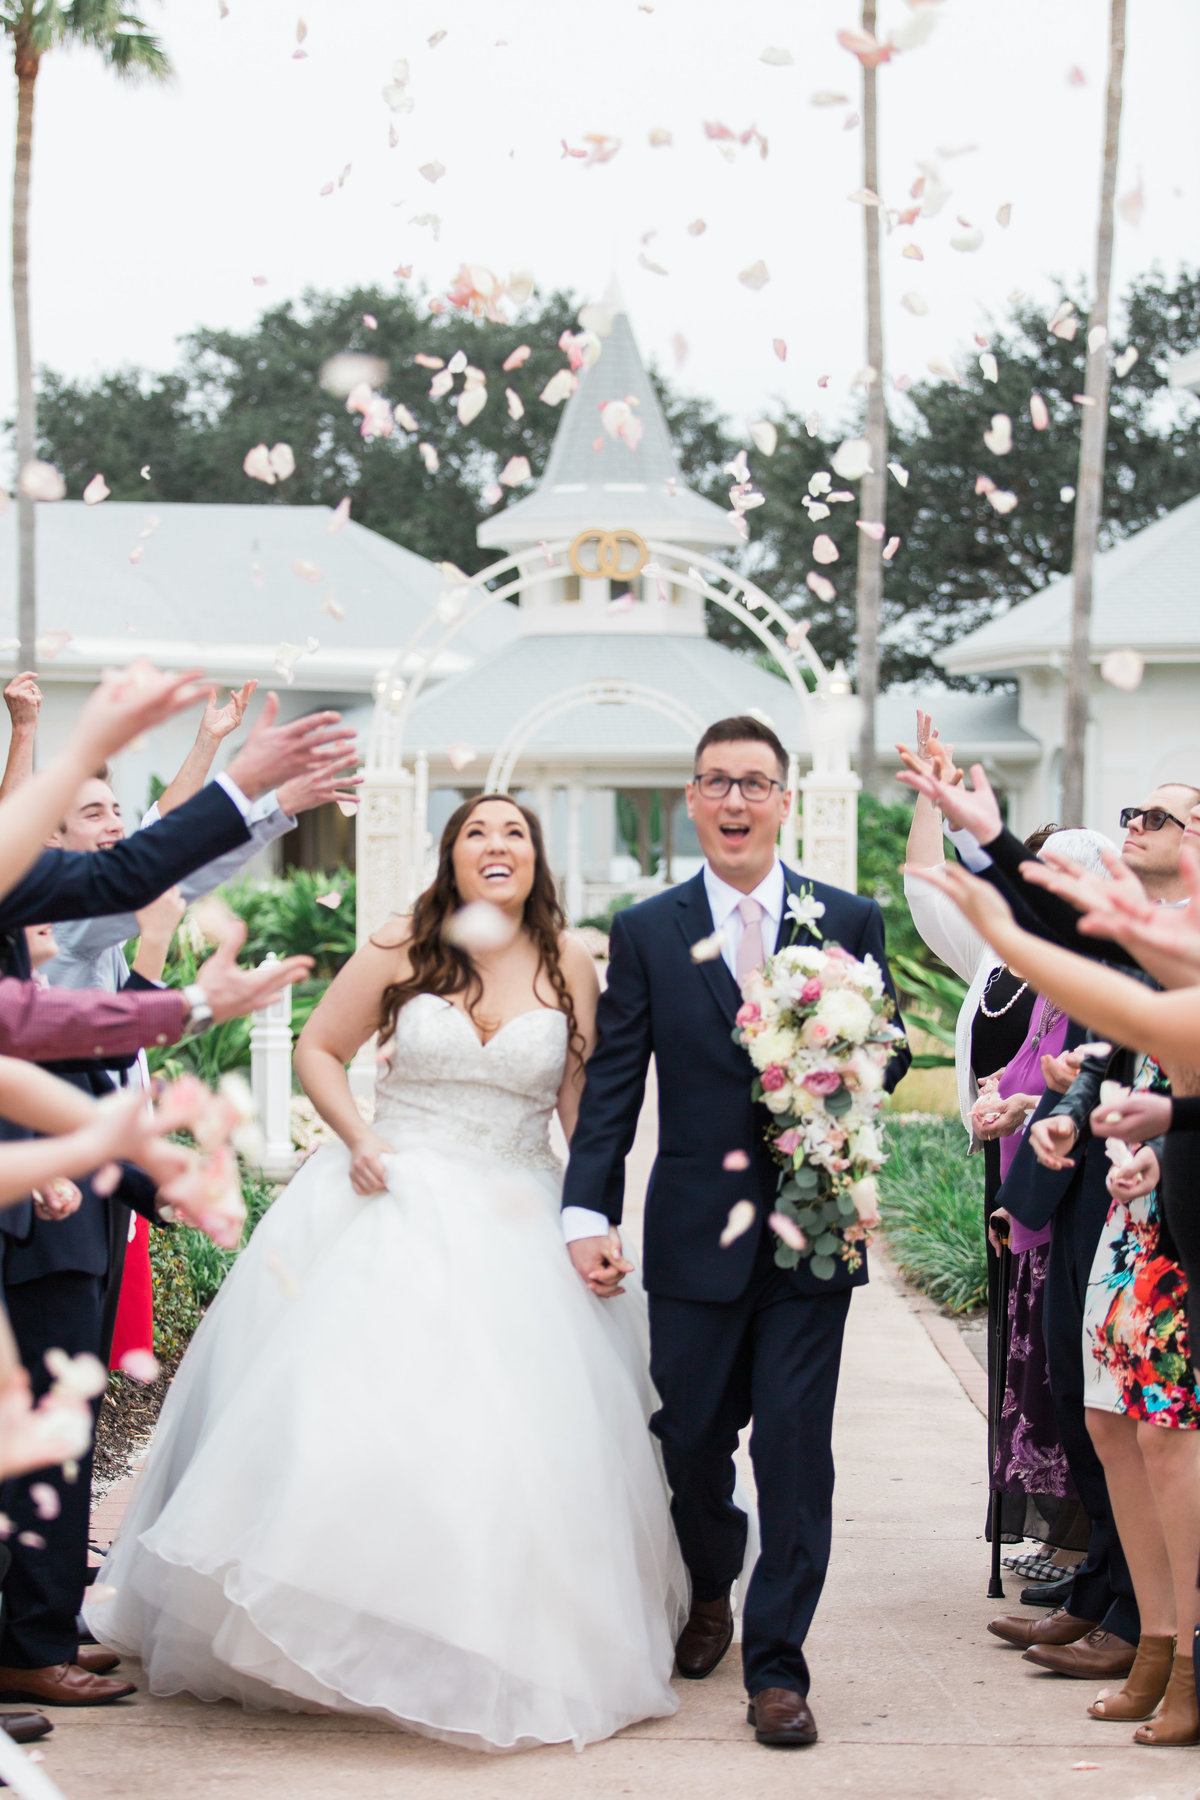 Jess Collins Photography Our Disney Wedding 2017 (442 of 668)